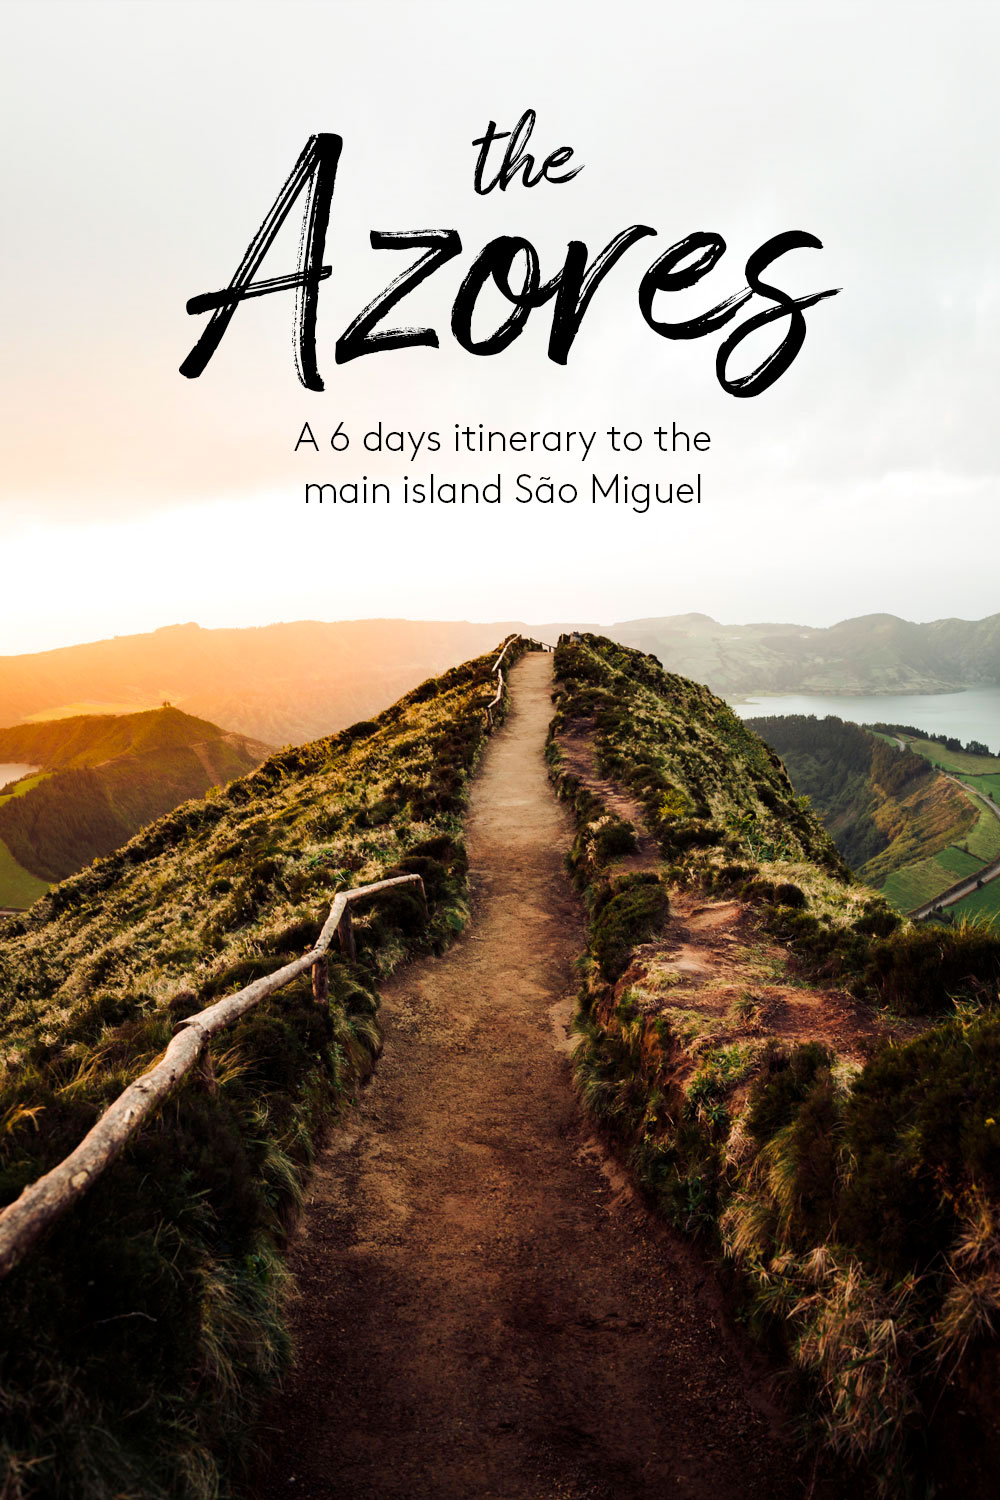 The Azores - a 6 days itinerary